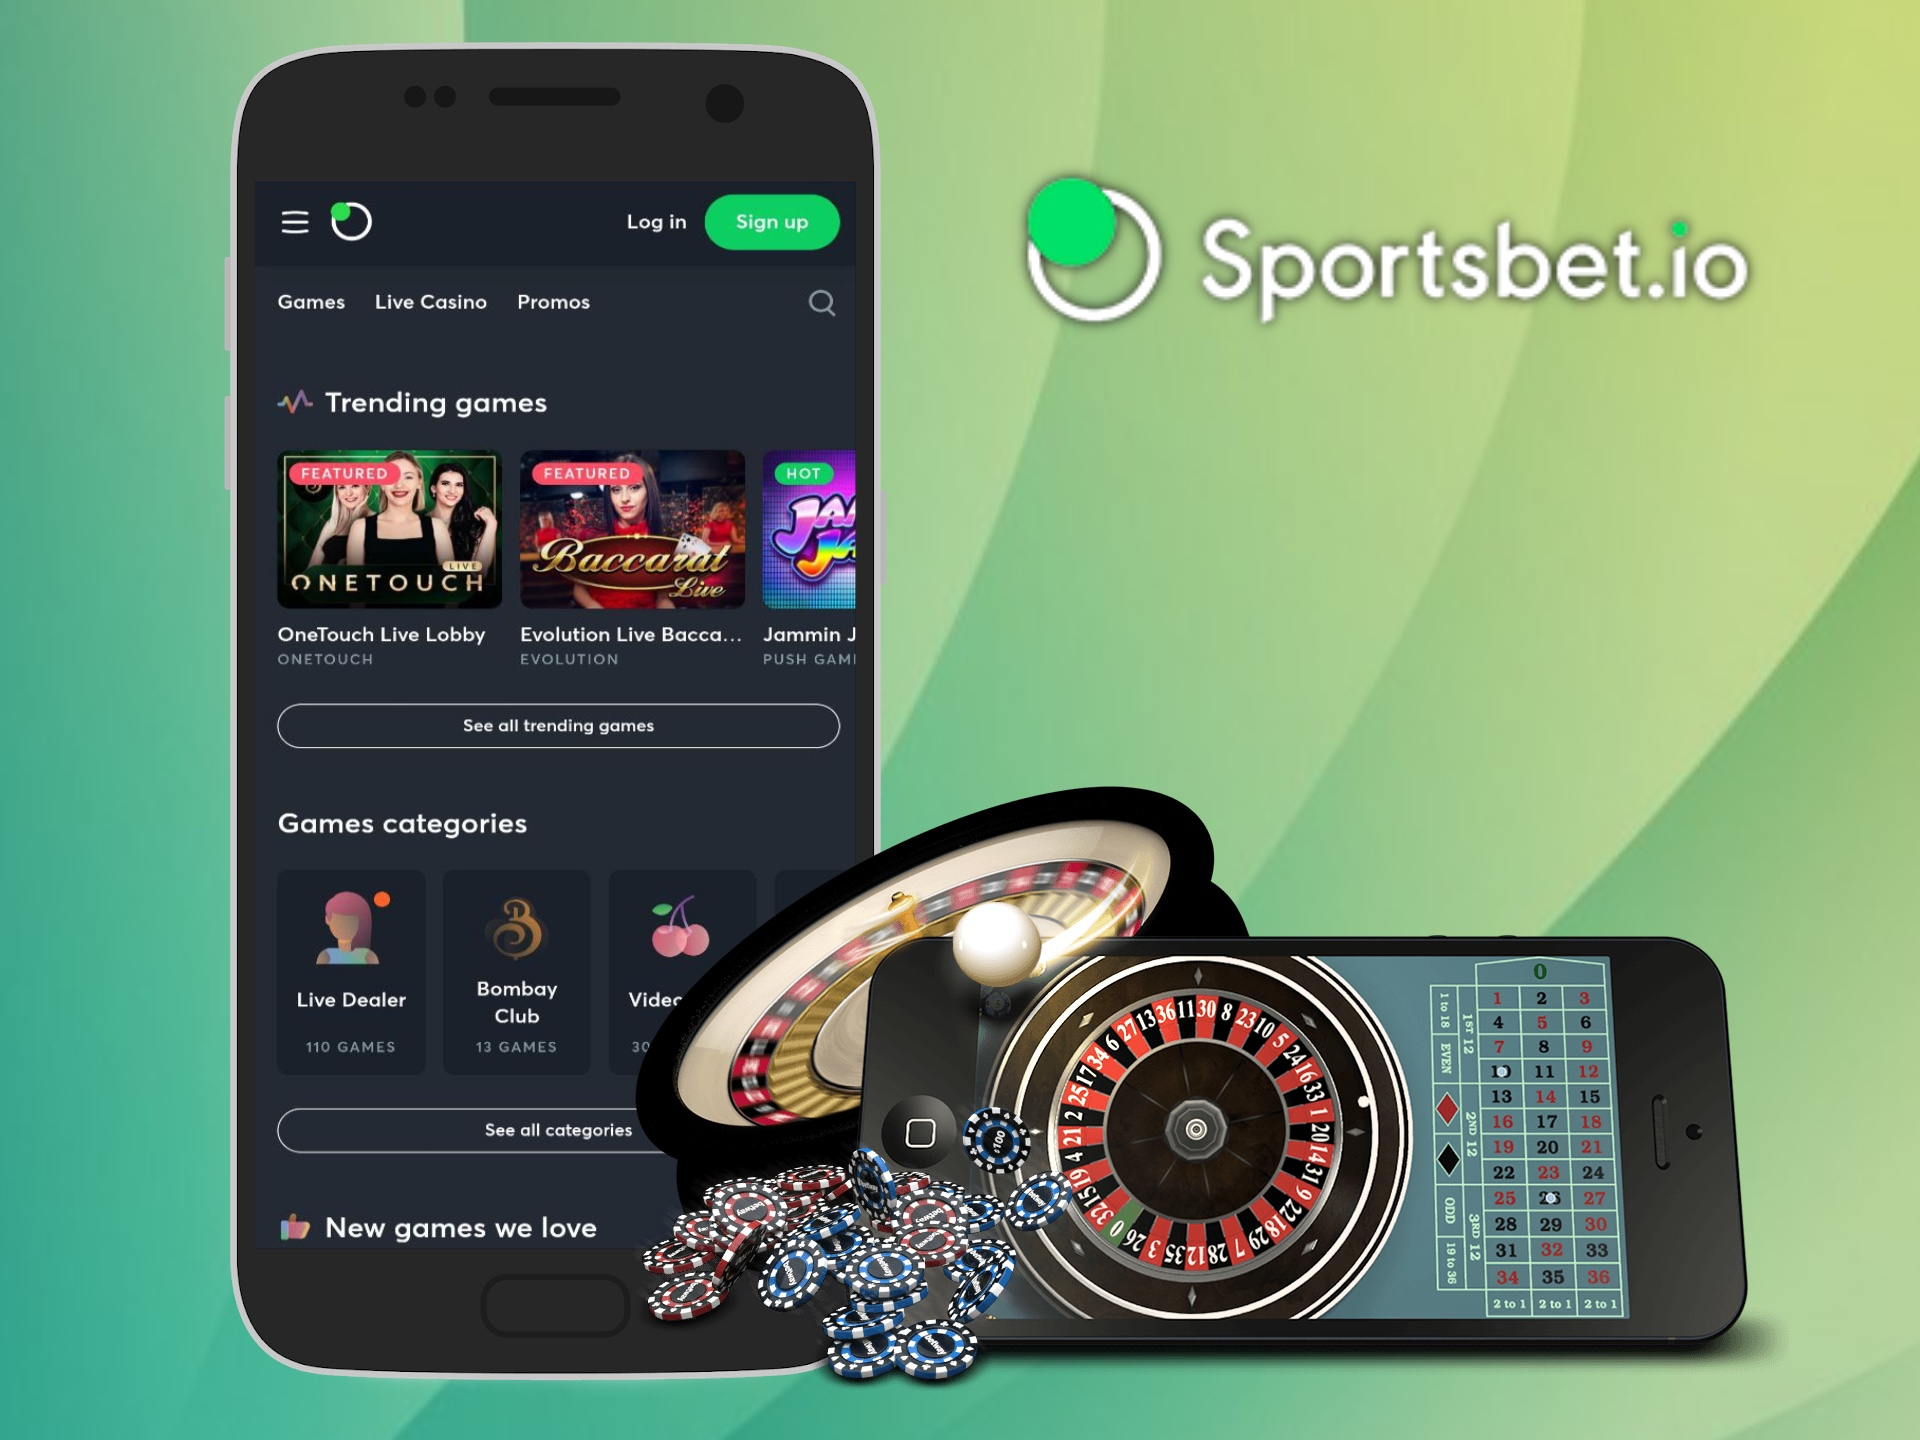 Sportsbet casino has a lot of slots and other games from well-known developers.